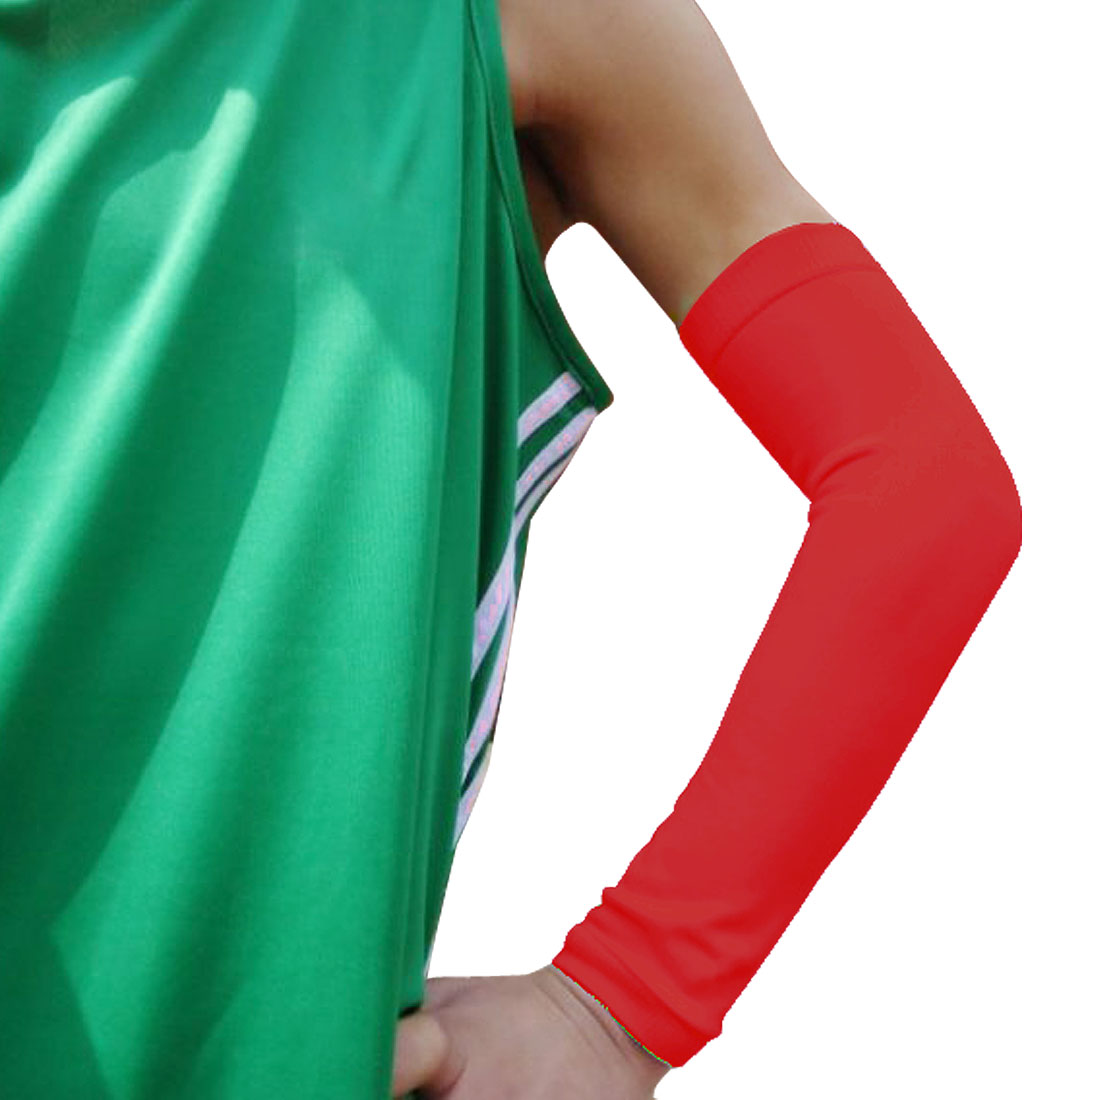 Tennis Basketball Stretchy Pull Over Sleeve Elbow Protective Support Red